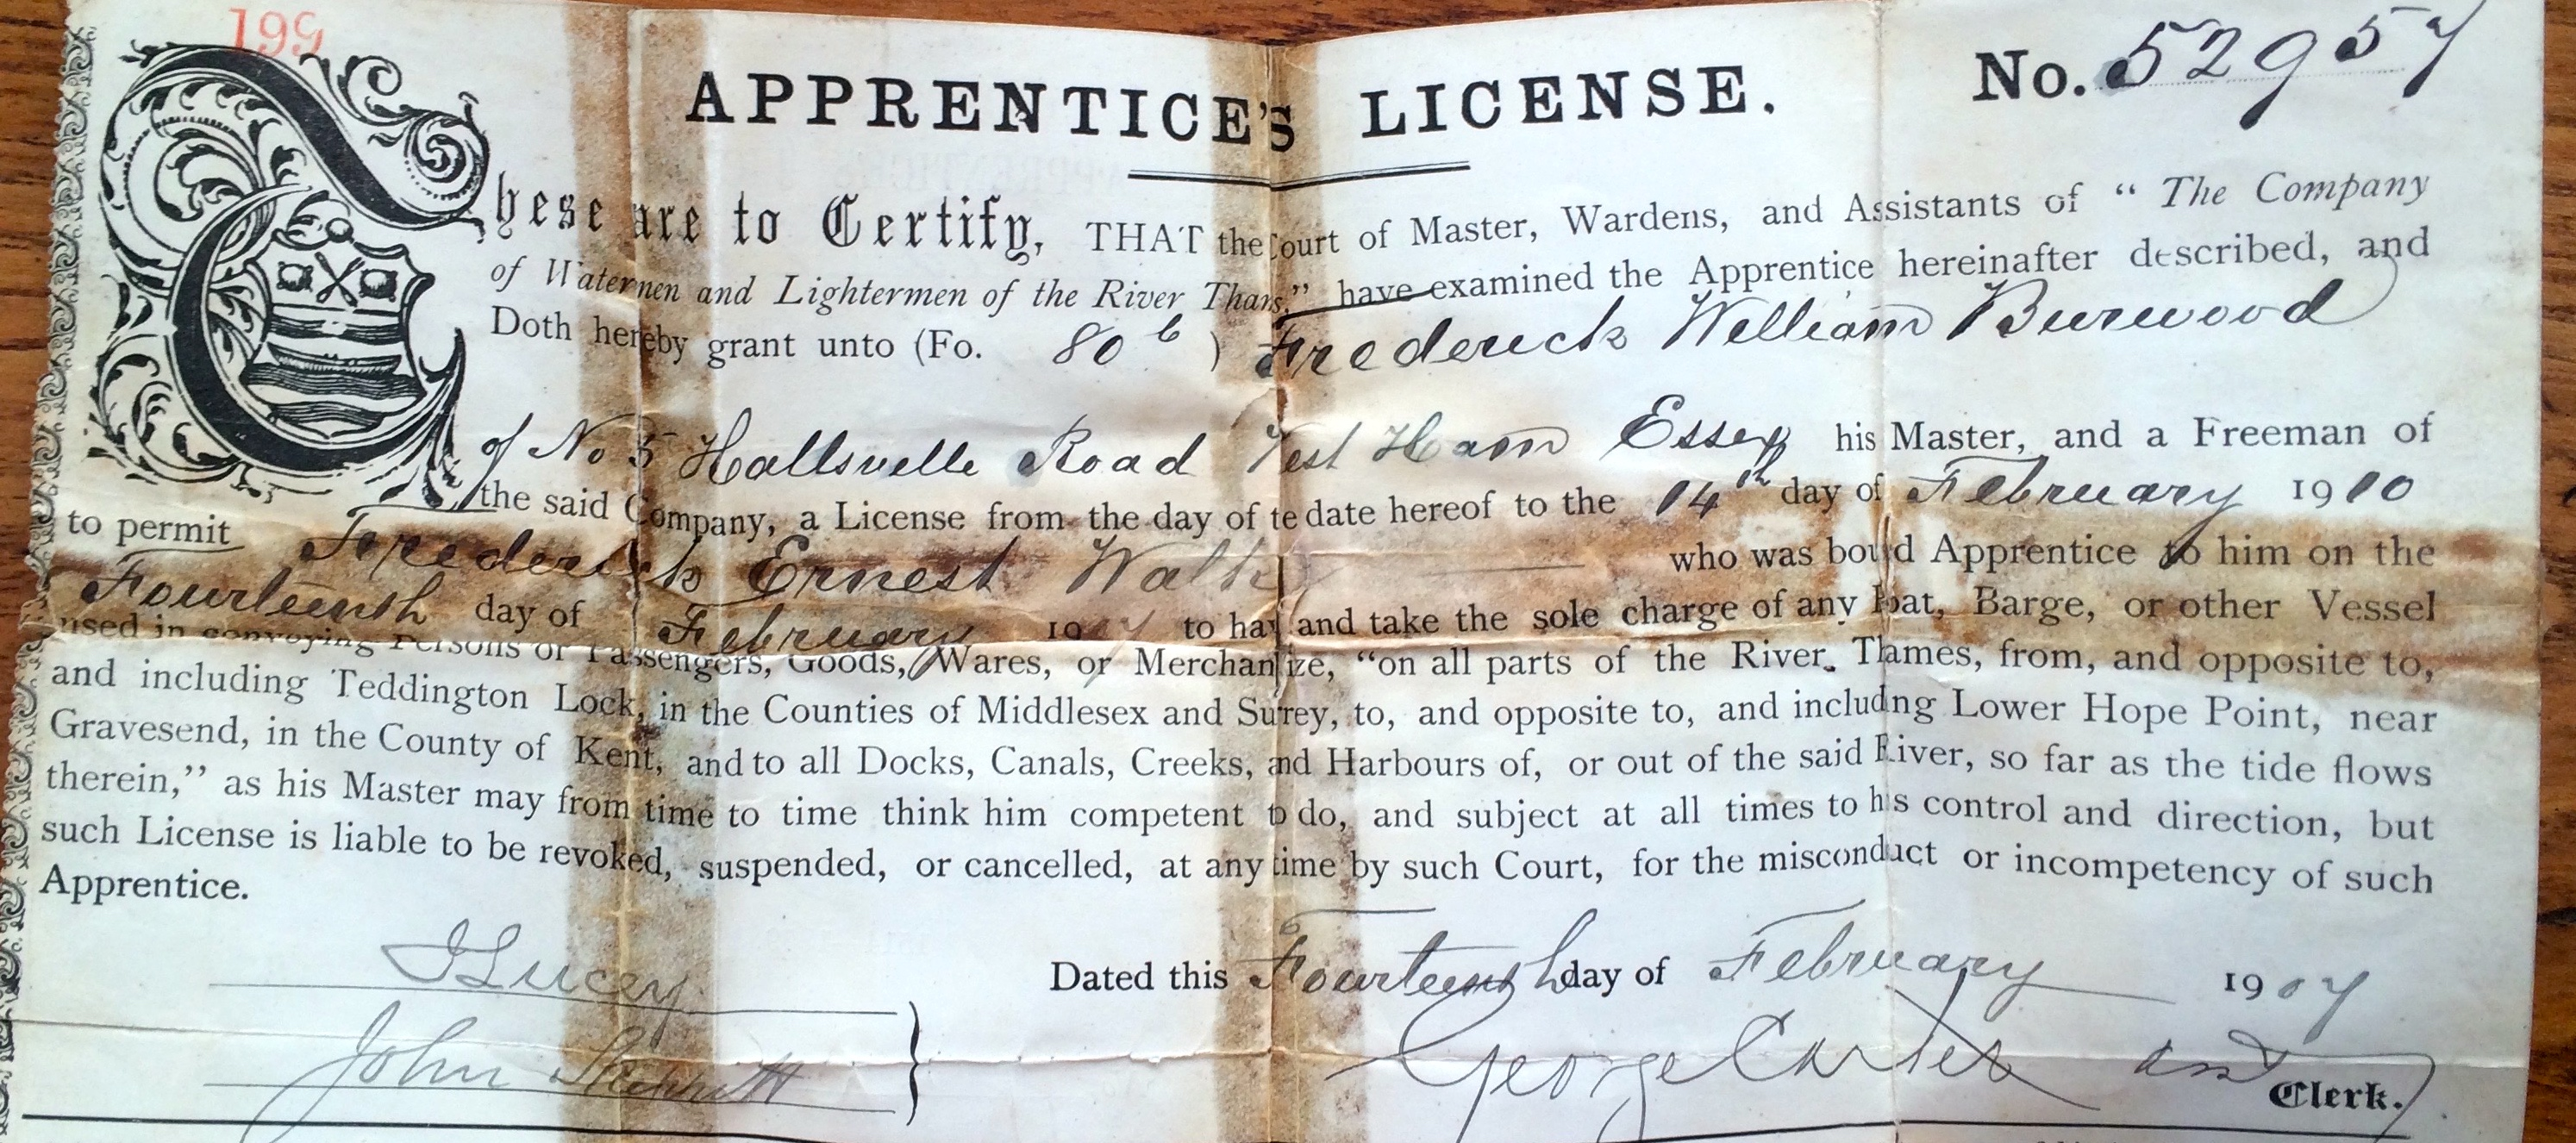 newly admitted watermen able to commit fornication or contract fe walker s apprentice s license dated 1907 this seems to allow him to